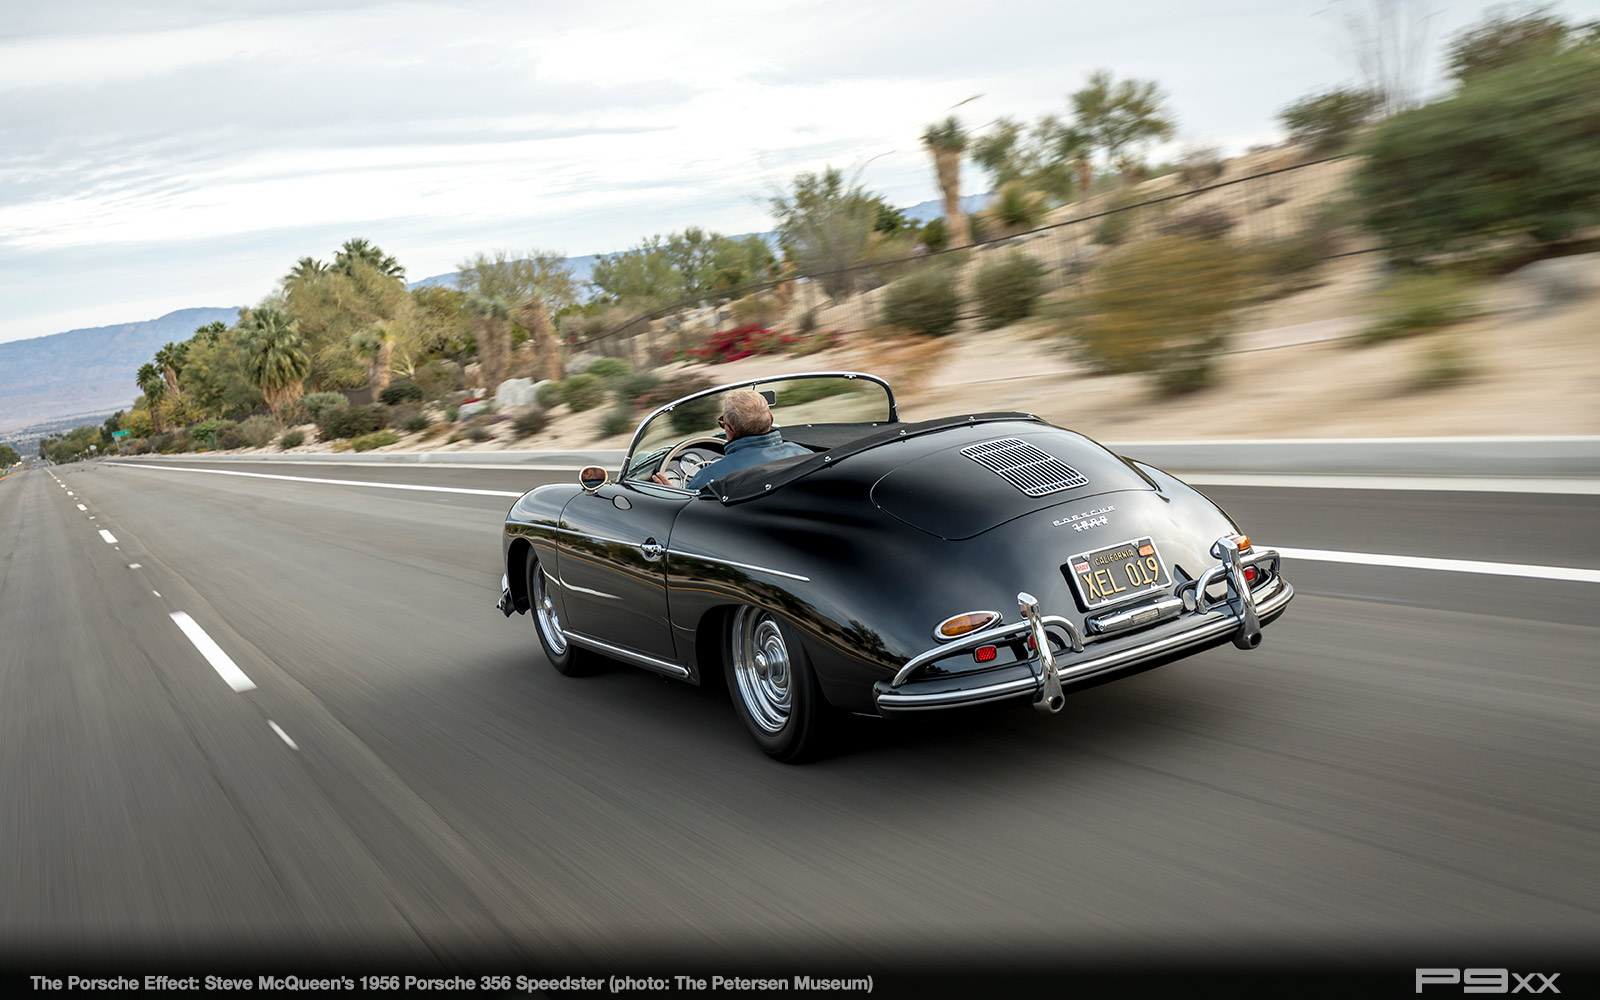 1956-Steve-McQueen-Chad-356-Speedster-Petersen-Automotive-Museum-The-Porsche-Effect-340